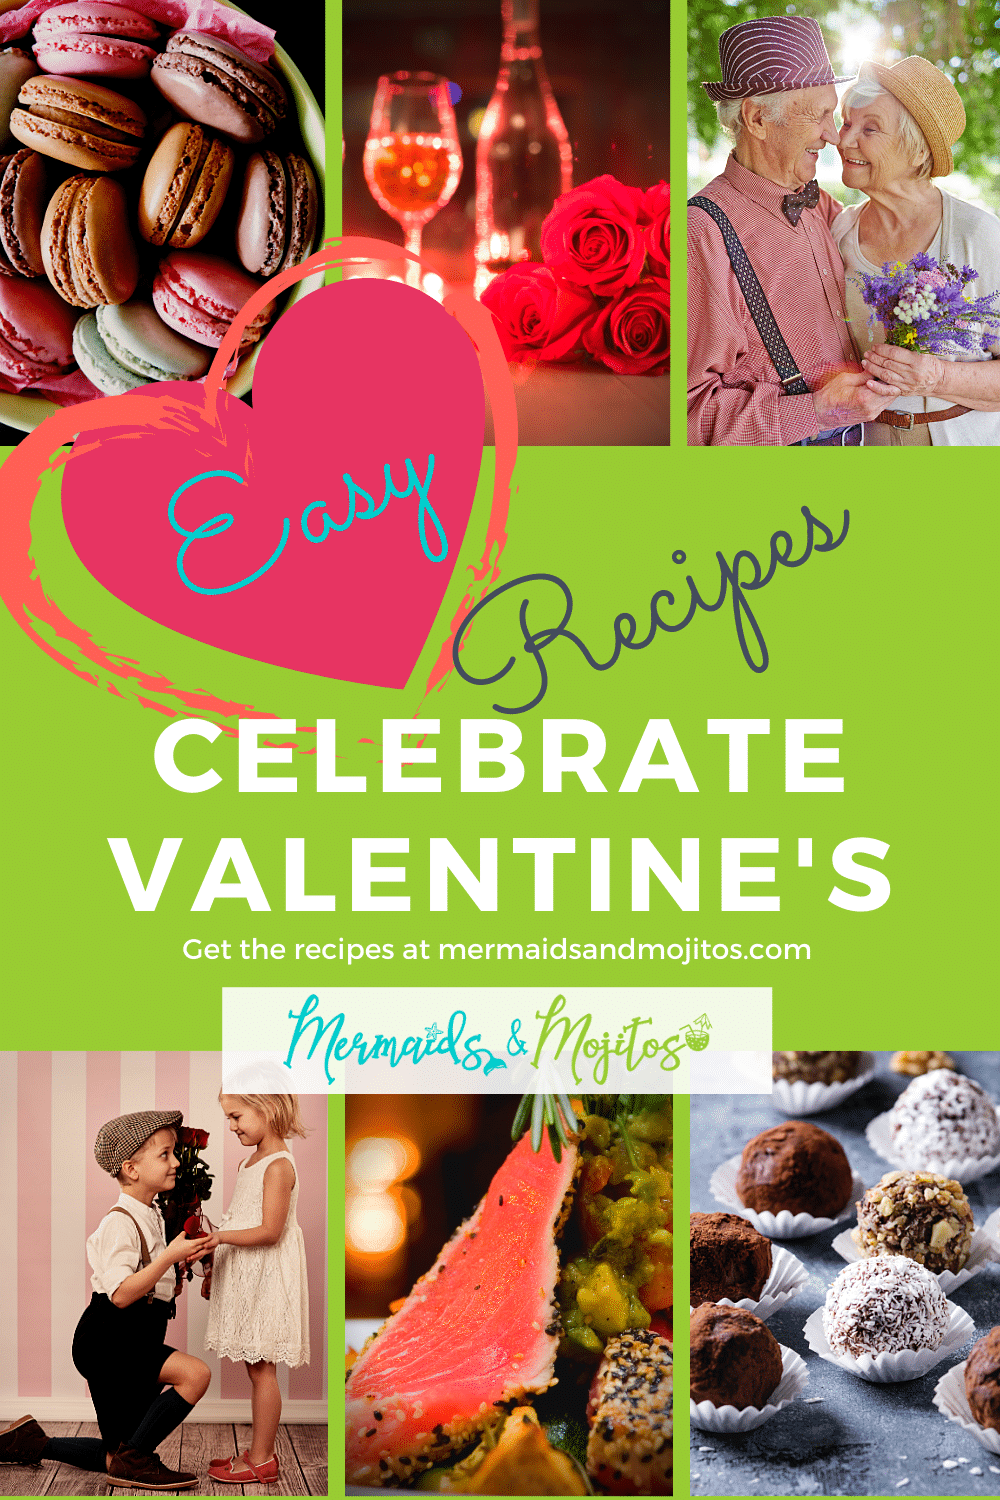 35 Romantic Valentine's Day Recipes. There is nothing better than cooking a romantic dinner and enjoying Valentine's Day dinner at home.  Making a romantic dinner at home can be fun and easy - just stick with elegant, simple meals that come together in no time and are super easy to make.